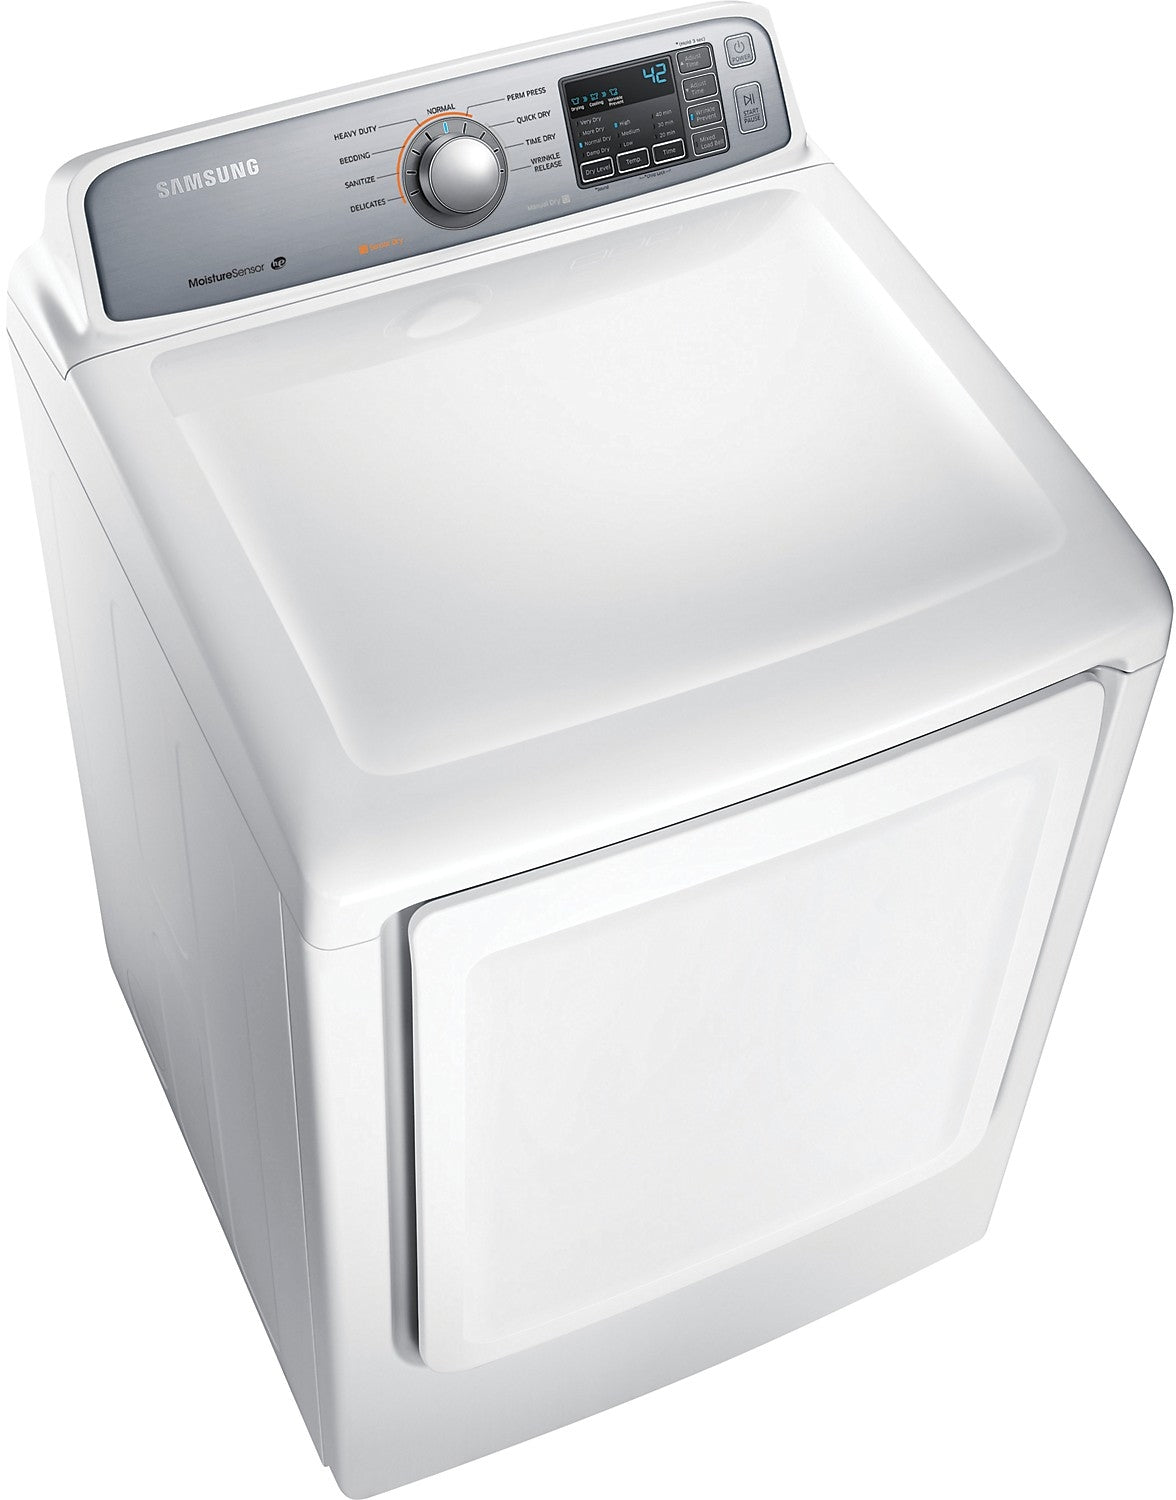 Samsung 7 4 Cu  Ft  Extra-Large Capacity Electric Dryer - White